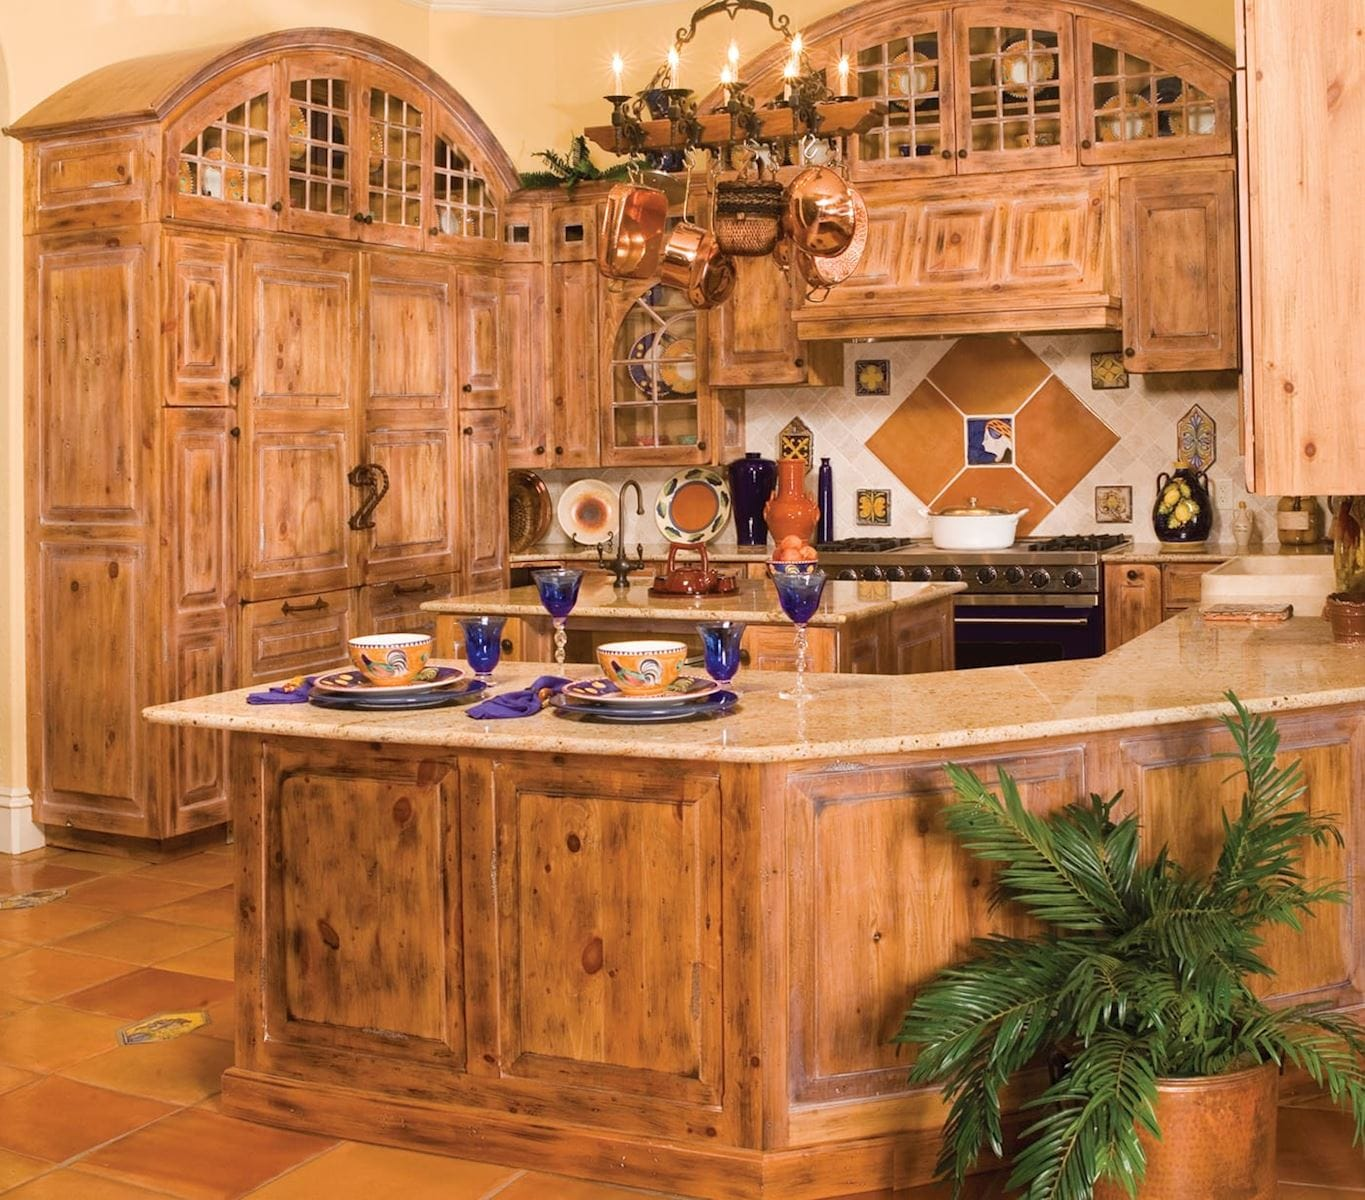 Rustic Pine Kitchen Cabinets: Kitchen Cabinet Woods And Finishes